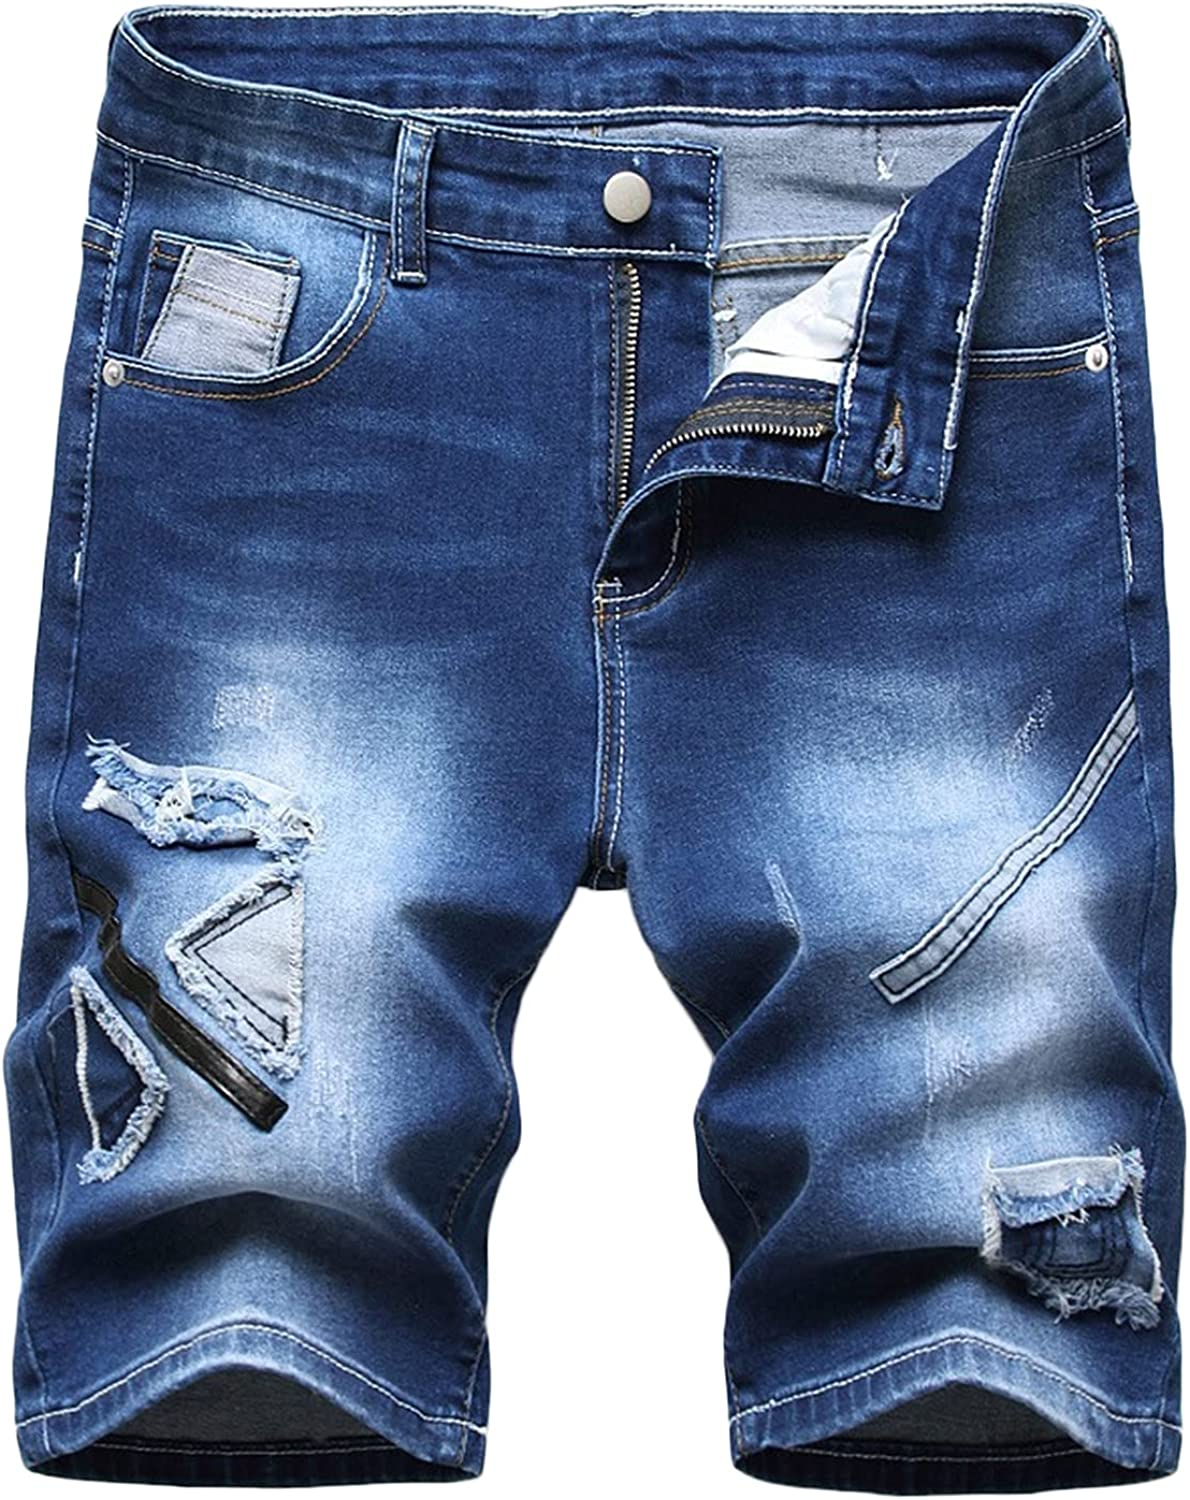 Men's Distressed Patch Denim Short Patchwork Ripped Slim Jeans Shorts Fashion Patches Casual Straight Jean Short-pant